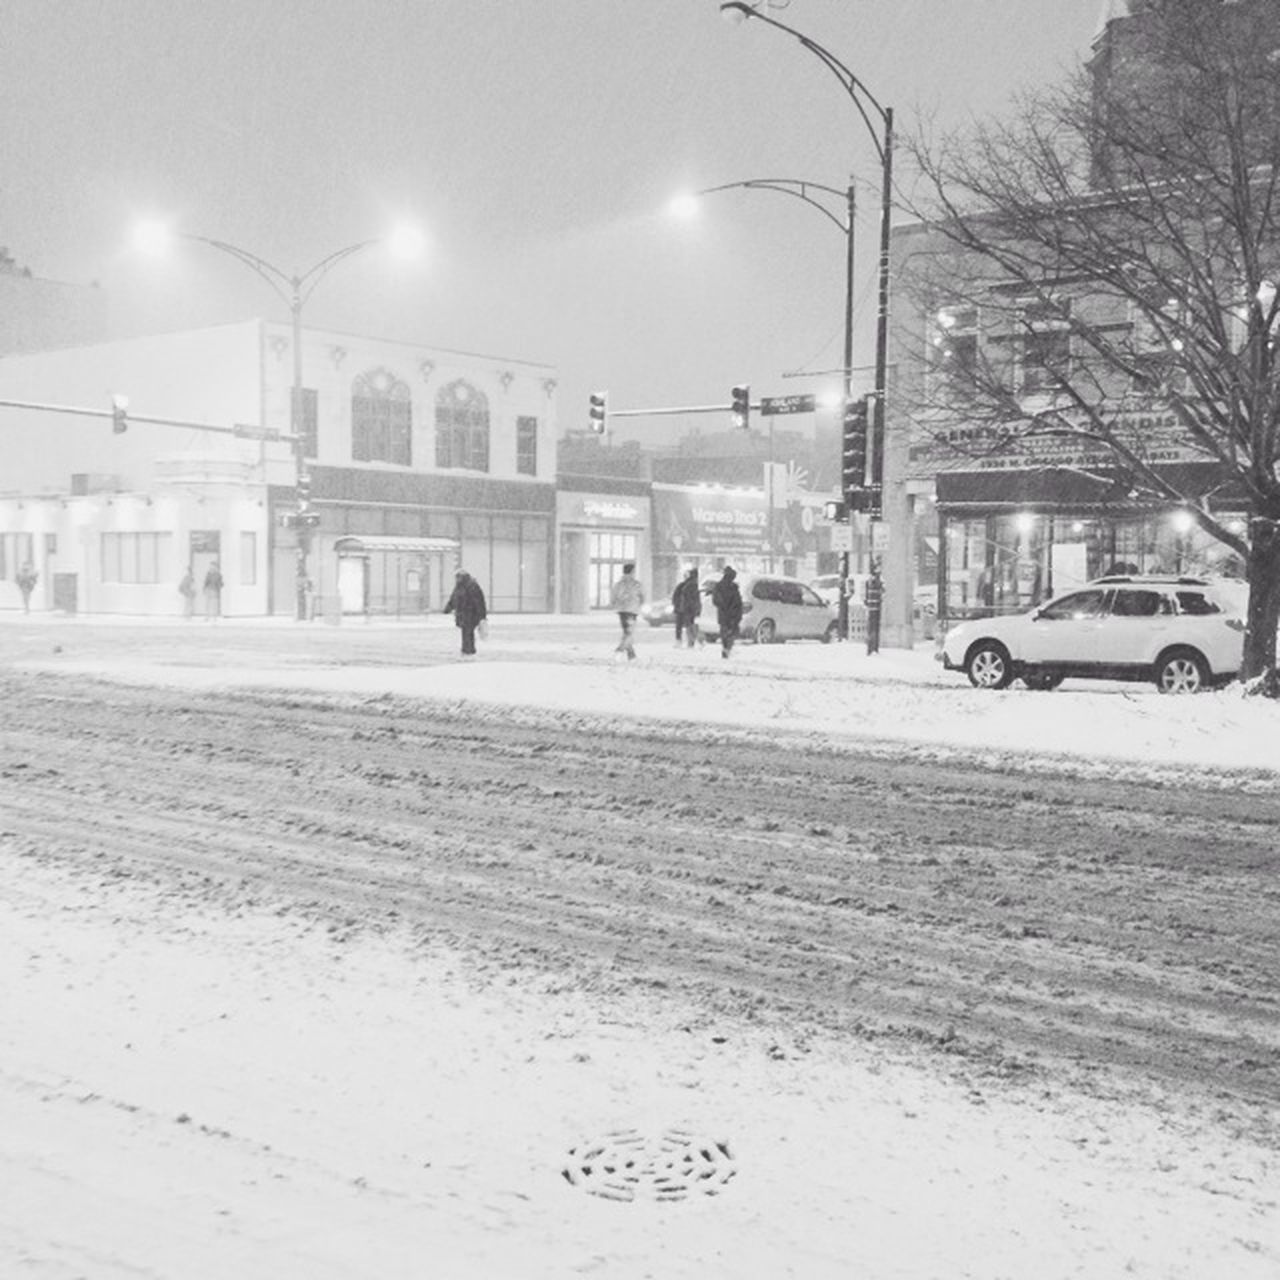 car, real people, built structure, architecture, transportation, building exterior, street, land vehicle, outdoors, street light, snow, winter, road, cold temperature, men, sky, city, day, nature, people